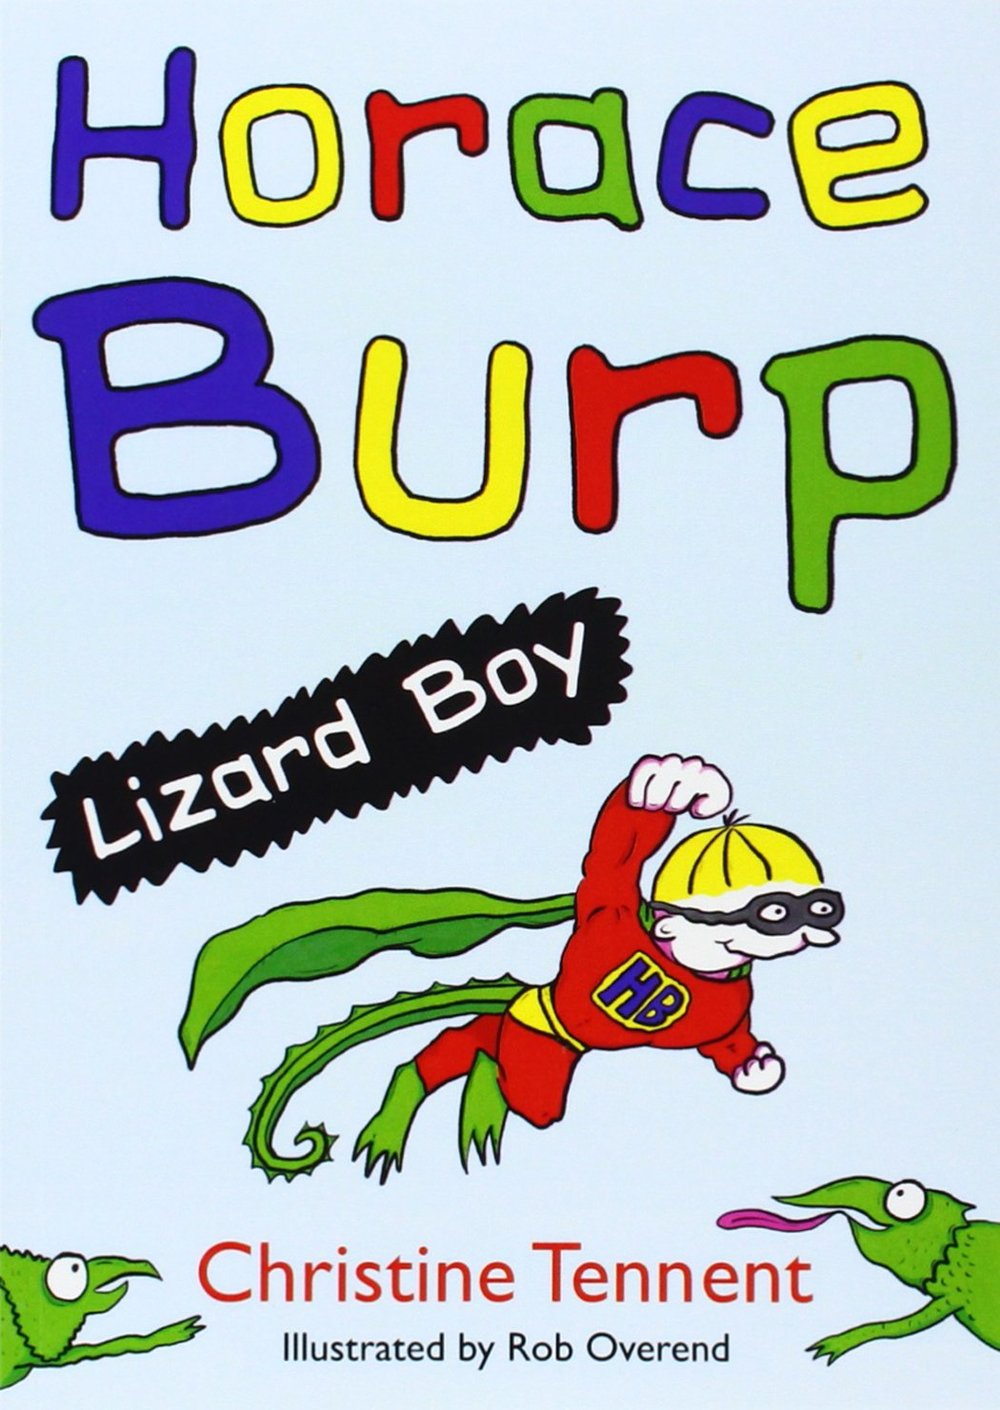 Horace Burp Lizard Boy.jpg